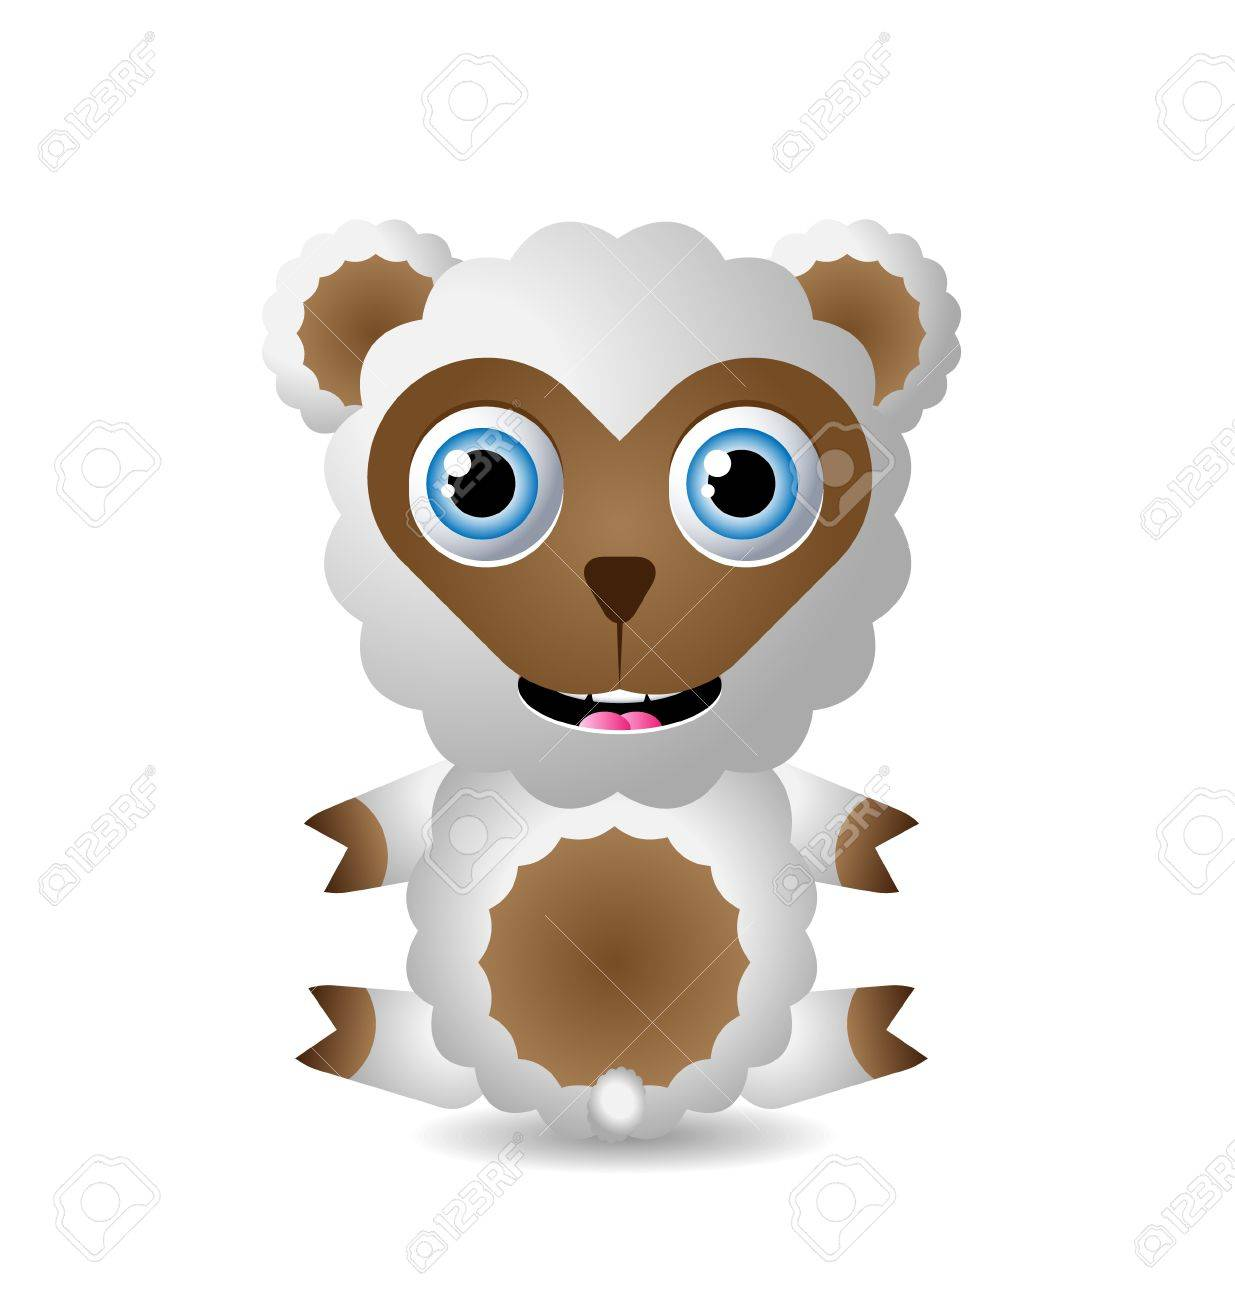 Cute animal character isolated on white background Stock Vector - 11294403